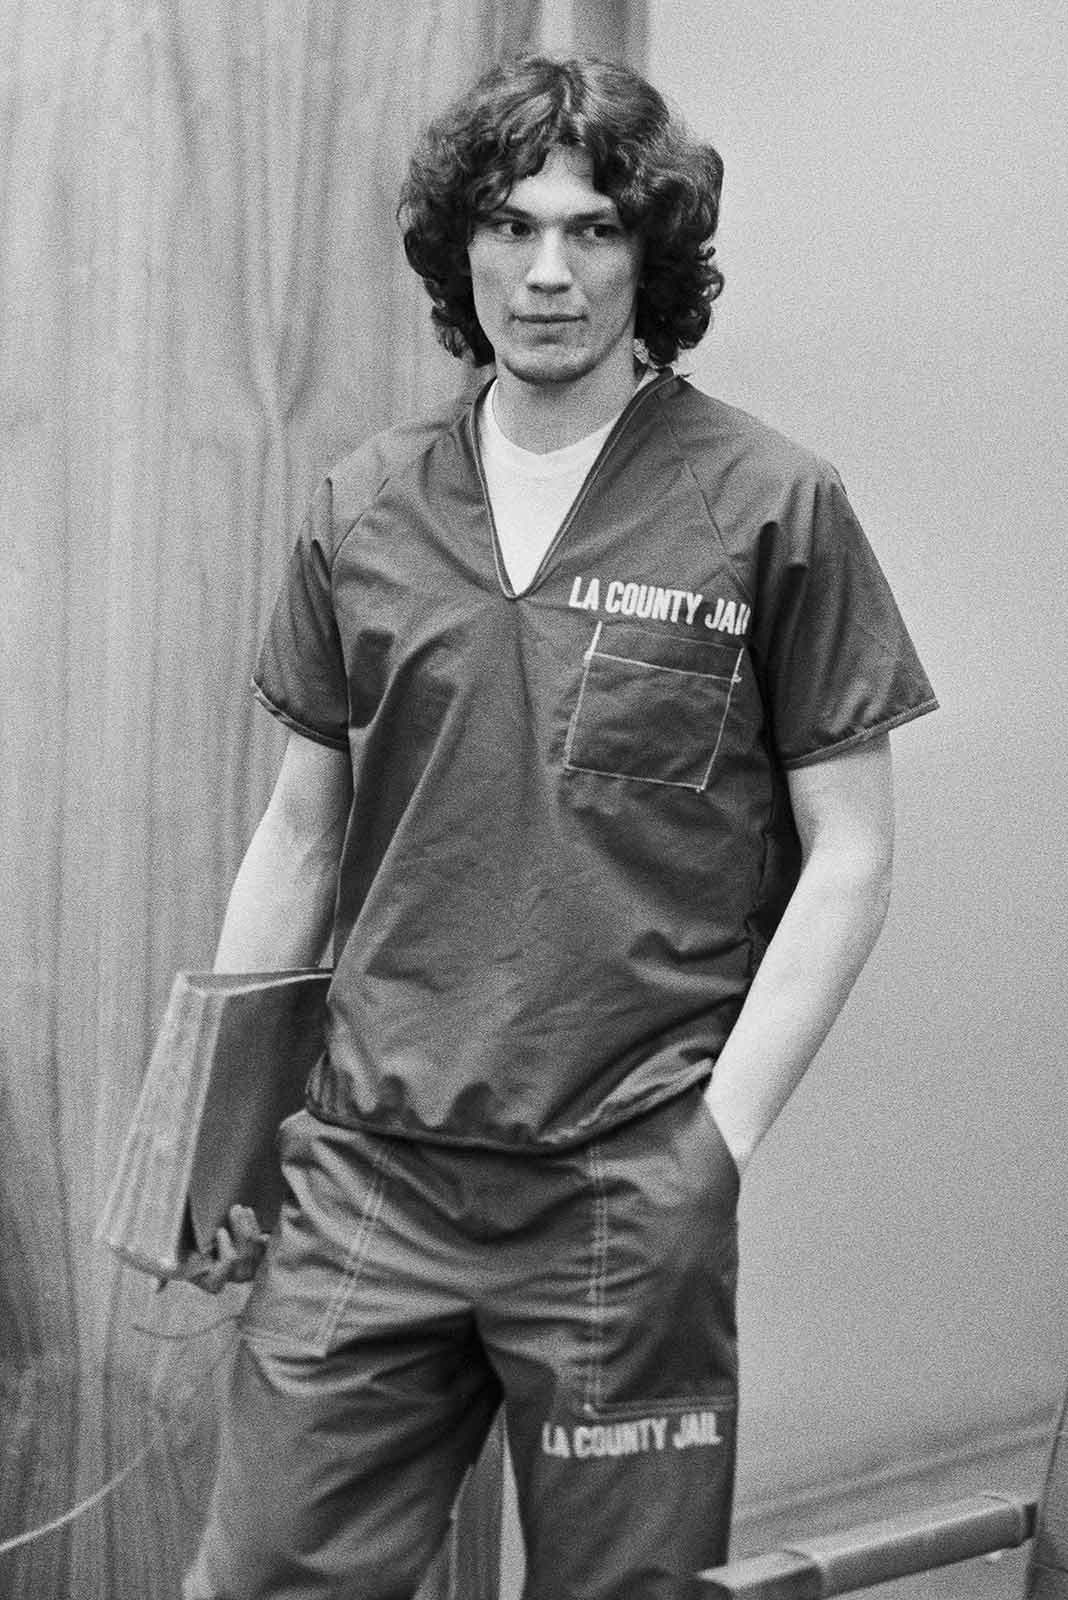 The Night Stalker terrorized LA and San Francisco for nearly two years. But the community were the ones to finally take him down when he messed up.